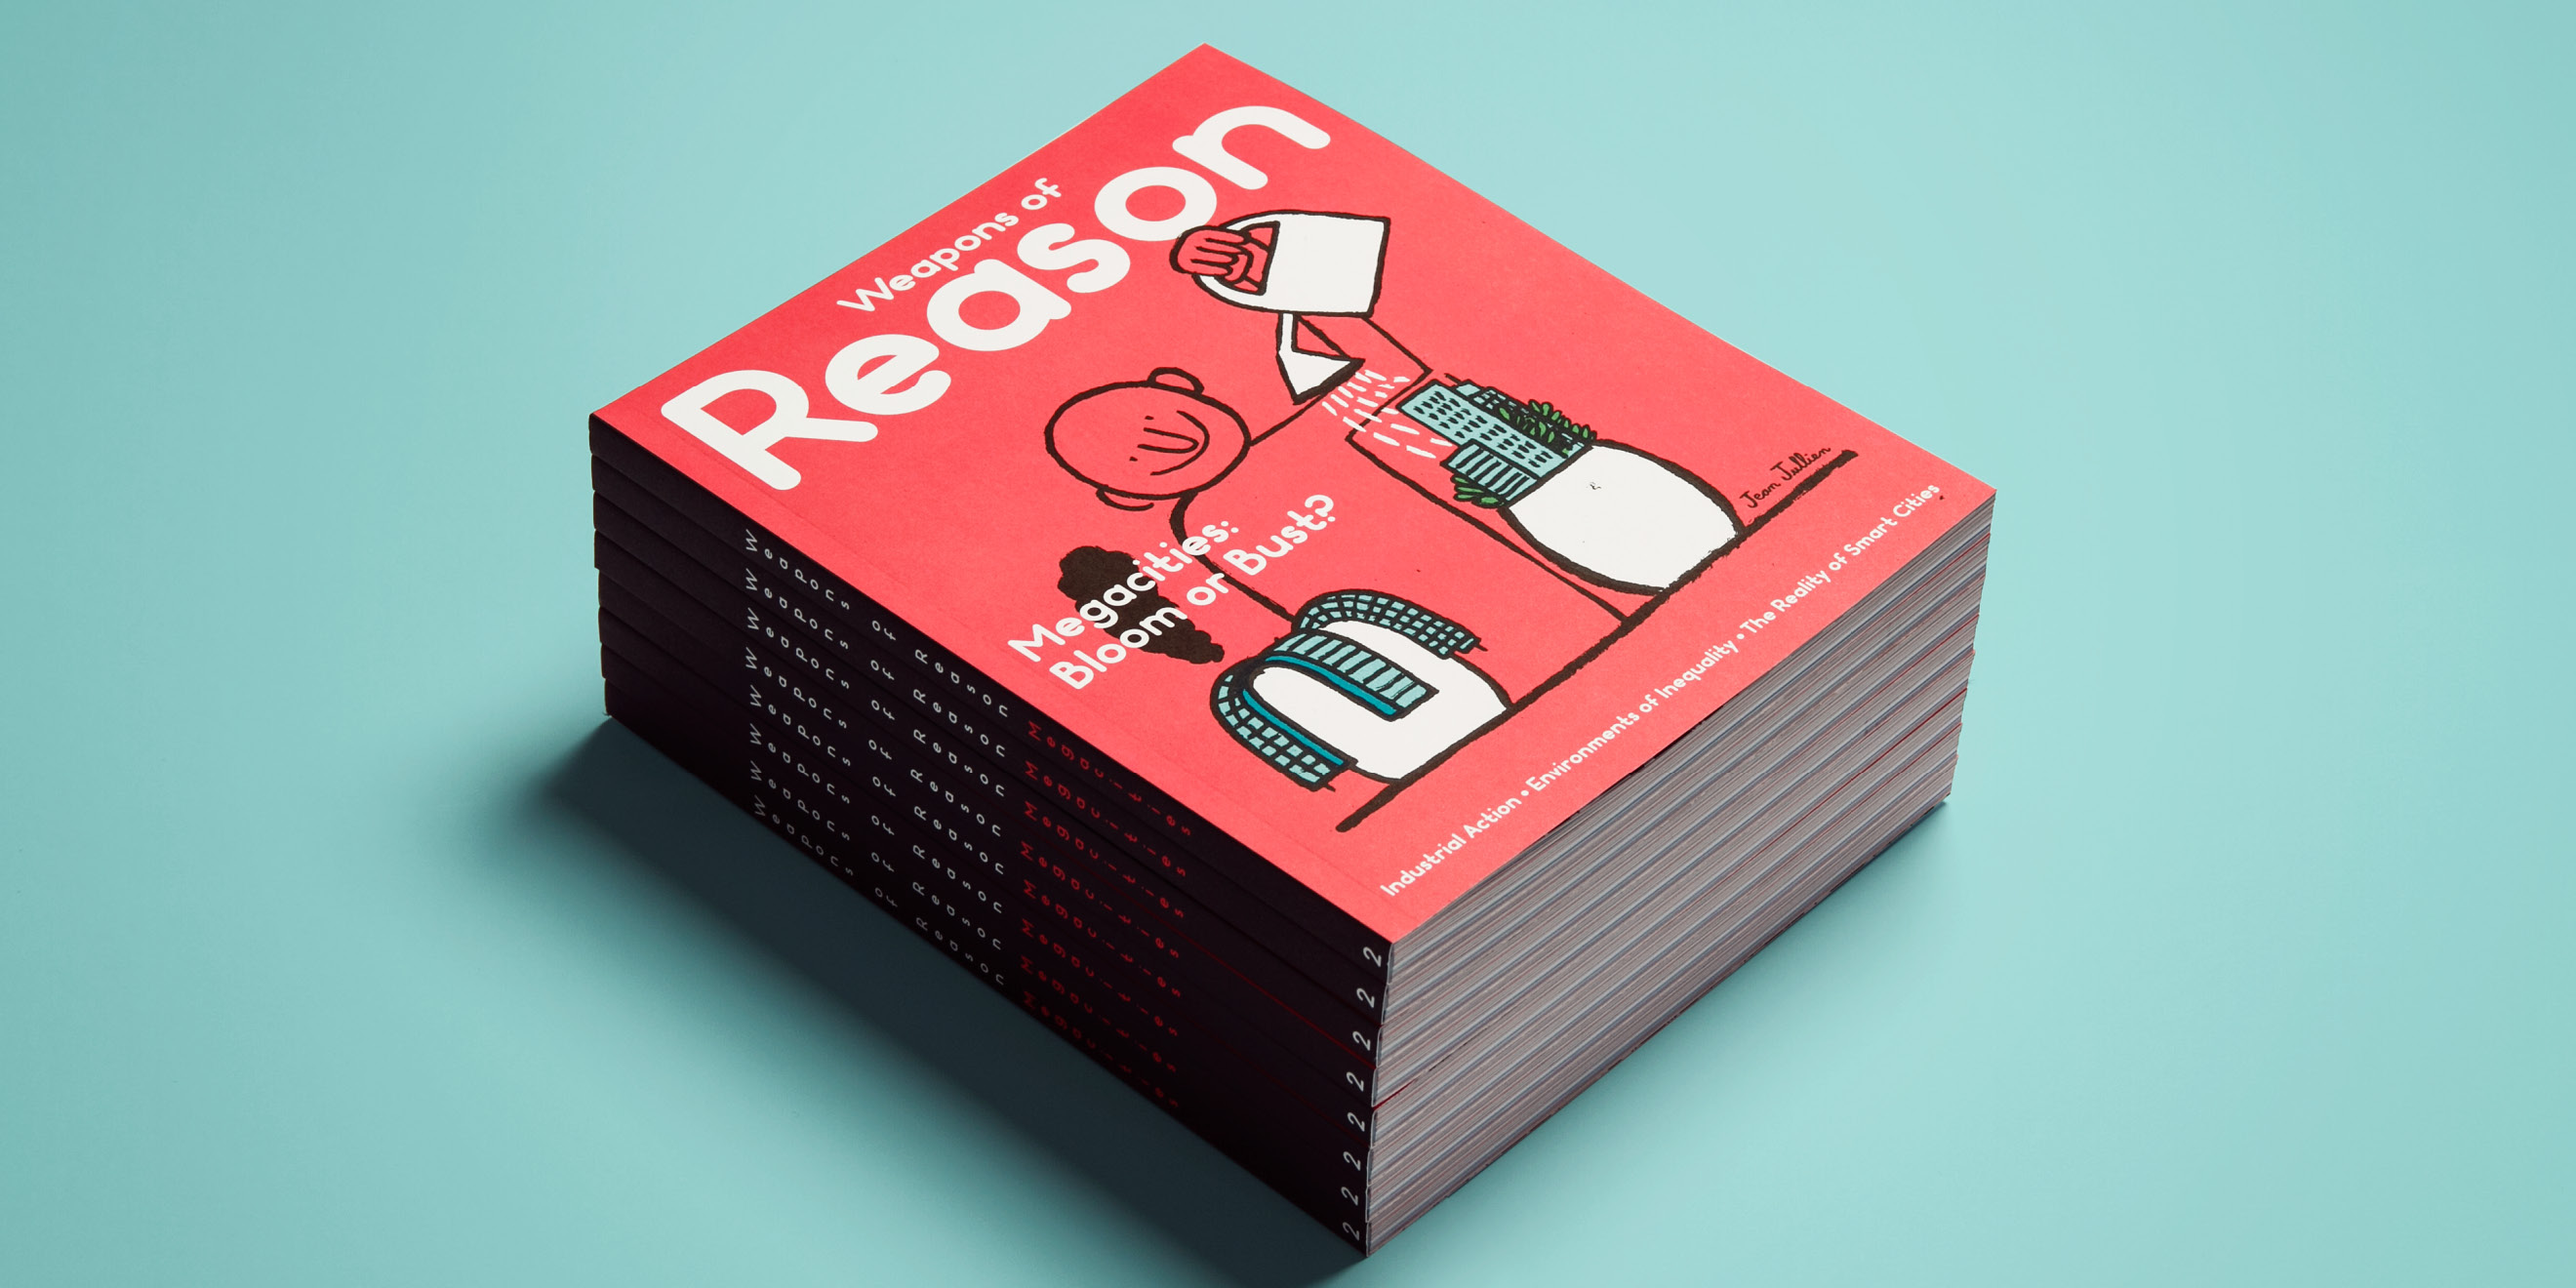 Weapons of Reason: Megacities - second issue of the self initiated magazine by Human After All